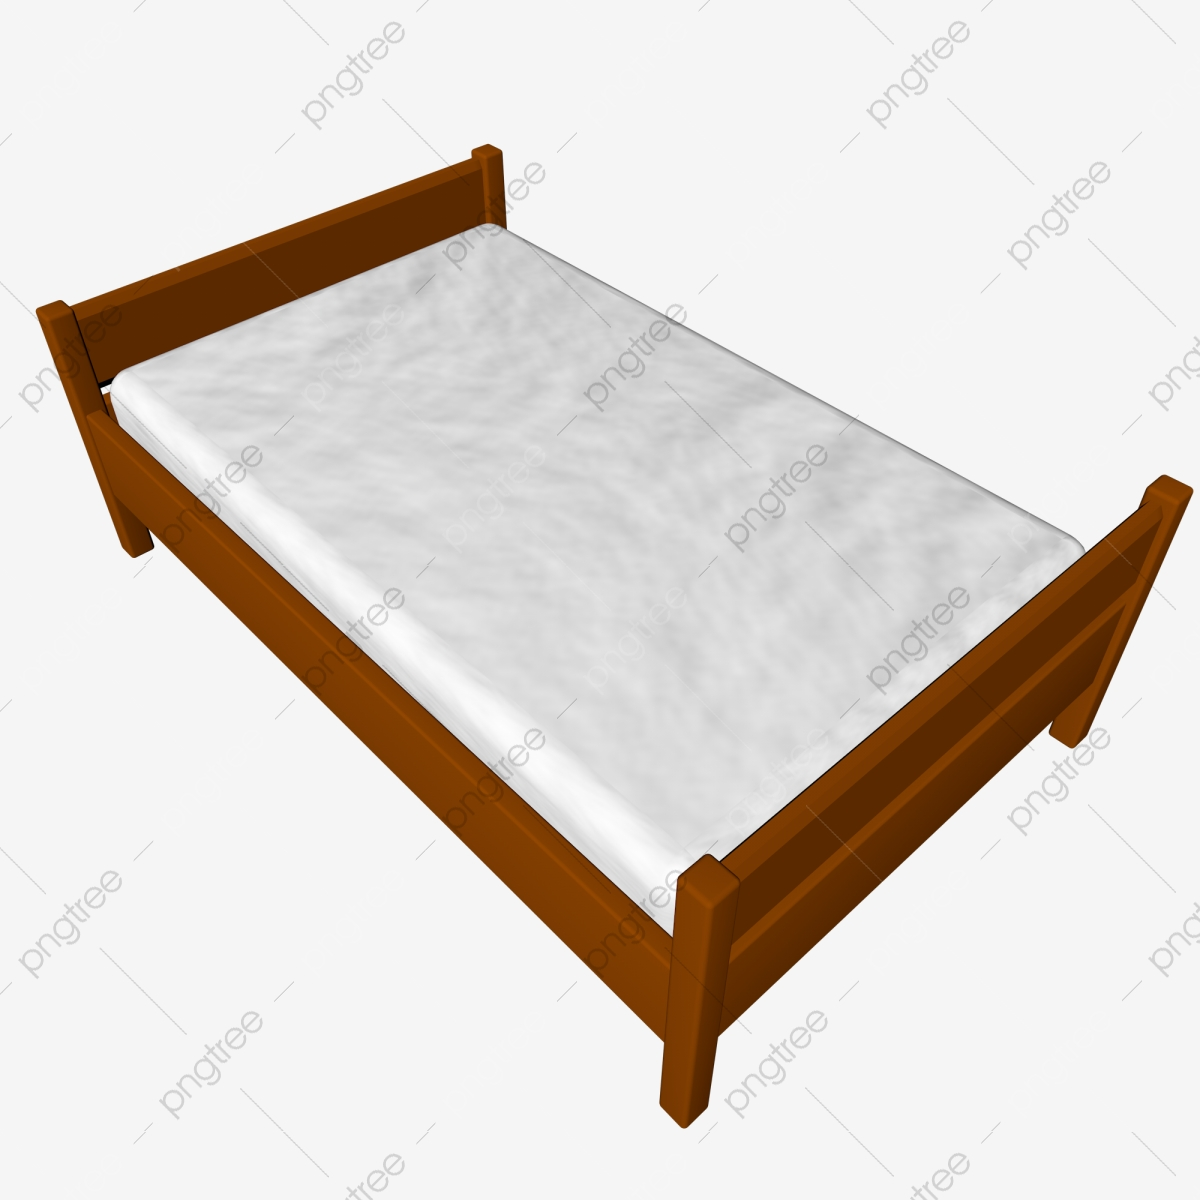 Simulation Furniture Single Bed Png Free Buckle C4d Model Simulation Furniture Home Improvement Png Transparent Clipart Image And Psd File For Free Download